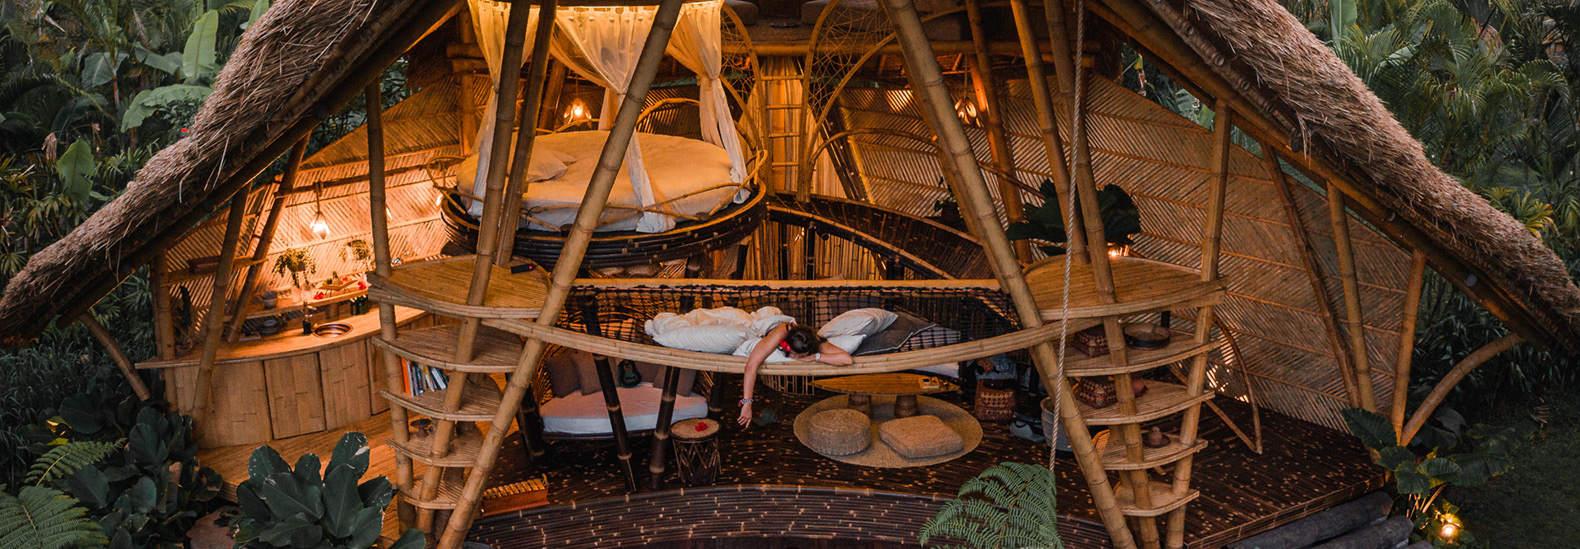 This glamping hideout in Bali is made entirely out of bamboo